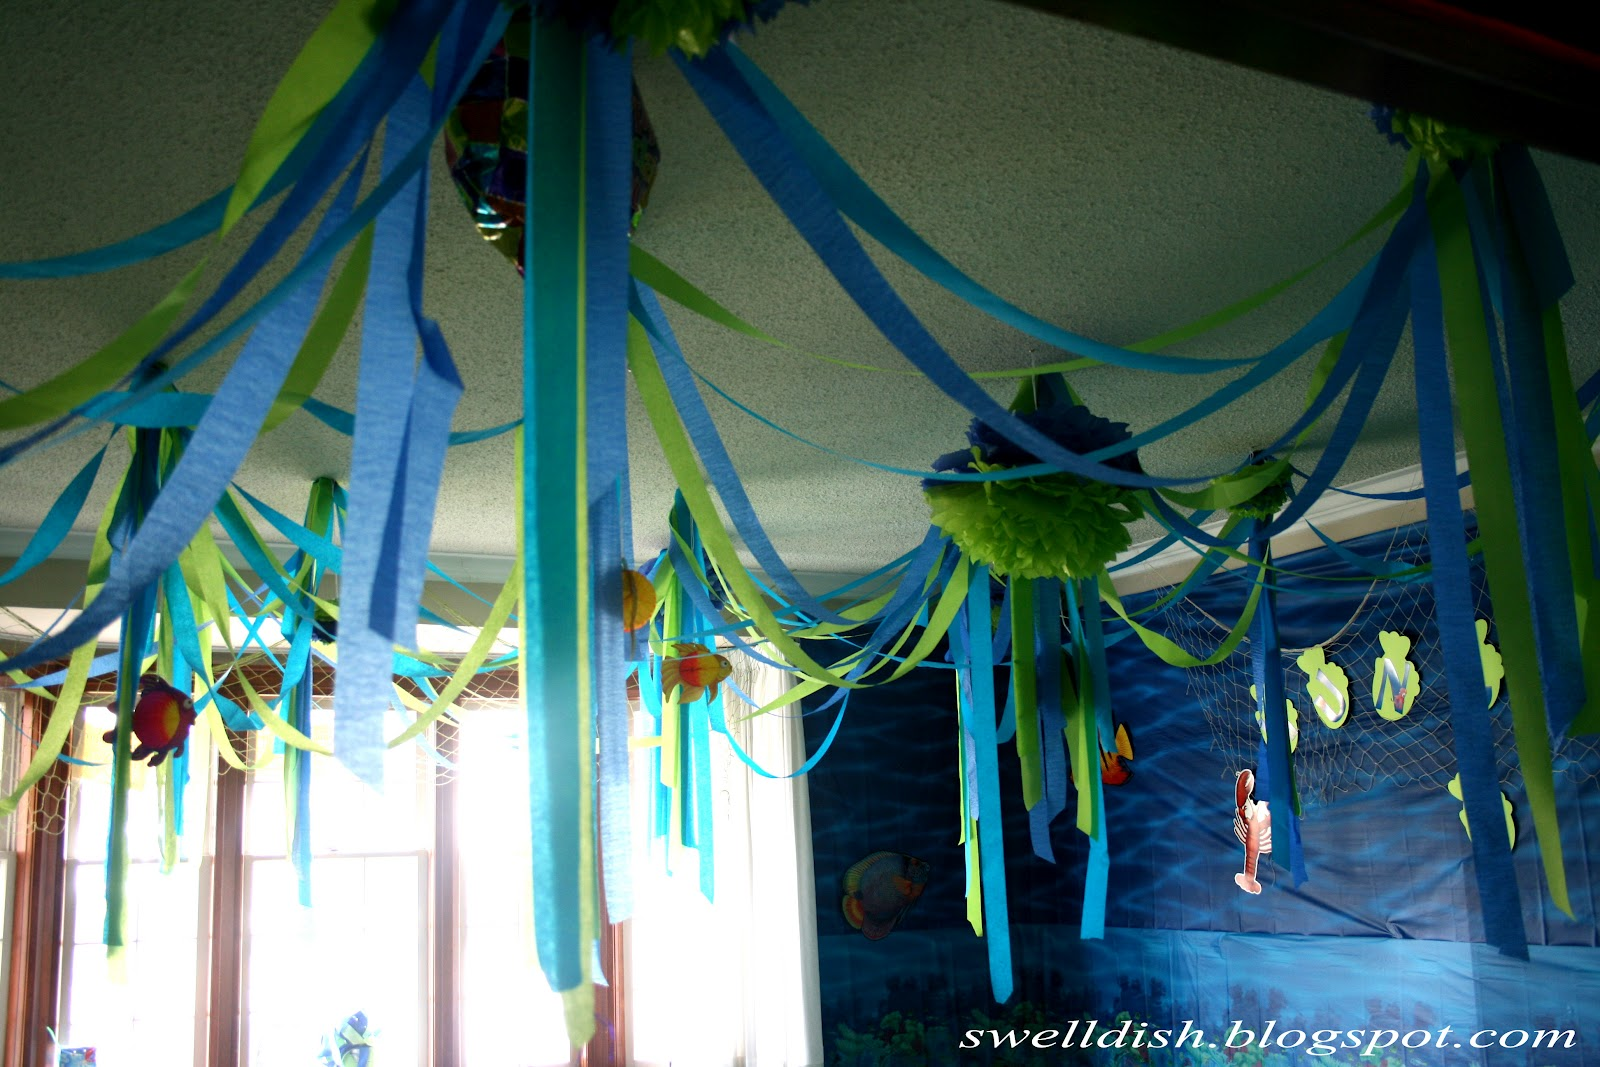 Here Is A Shot Of The Ceiling Decoration Plan Was To Actually Have Hundreds Individual Streamers Hanging Down But I Couldn T Get Tape Stick